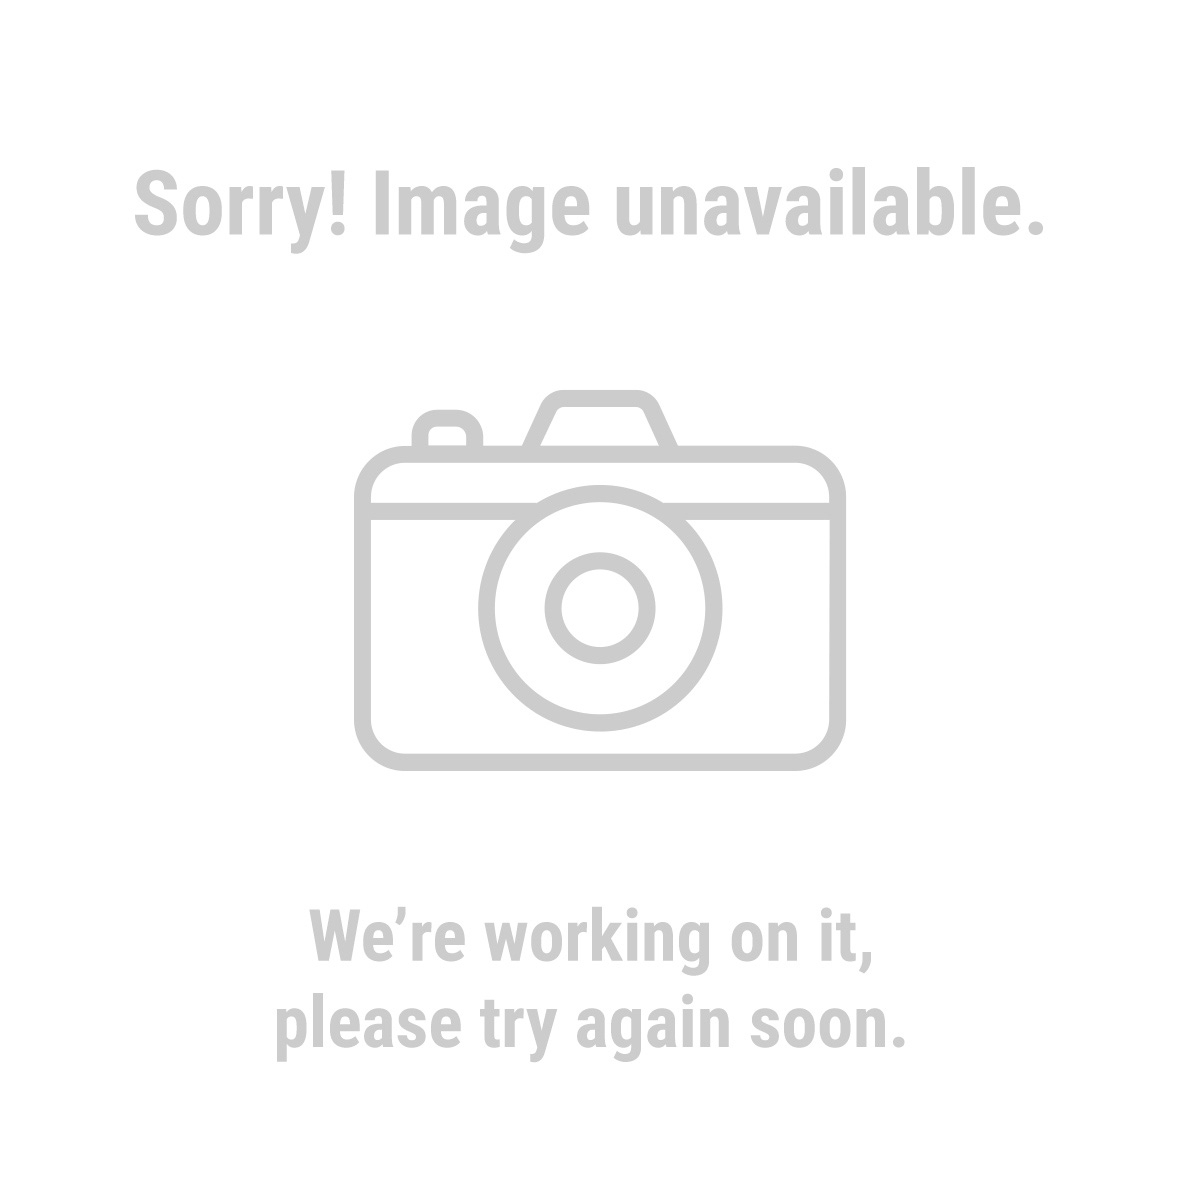 U.S. General® 99730 11 Compartment Drawer Organizer